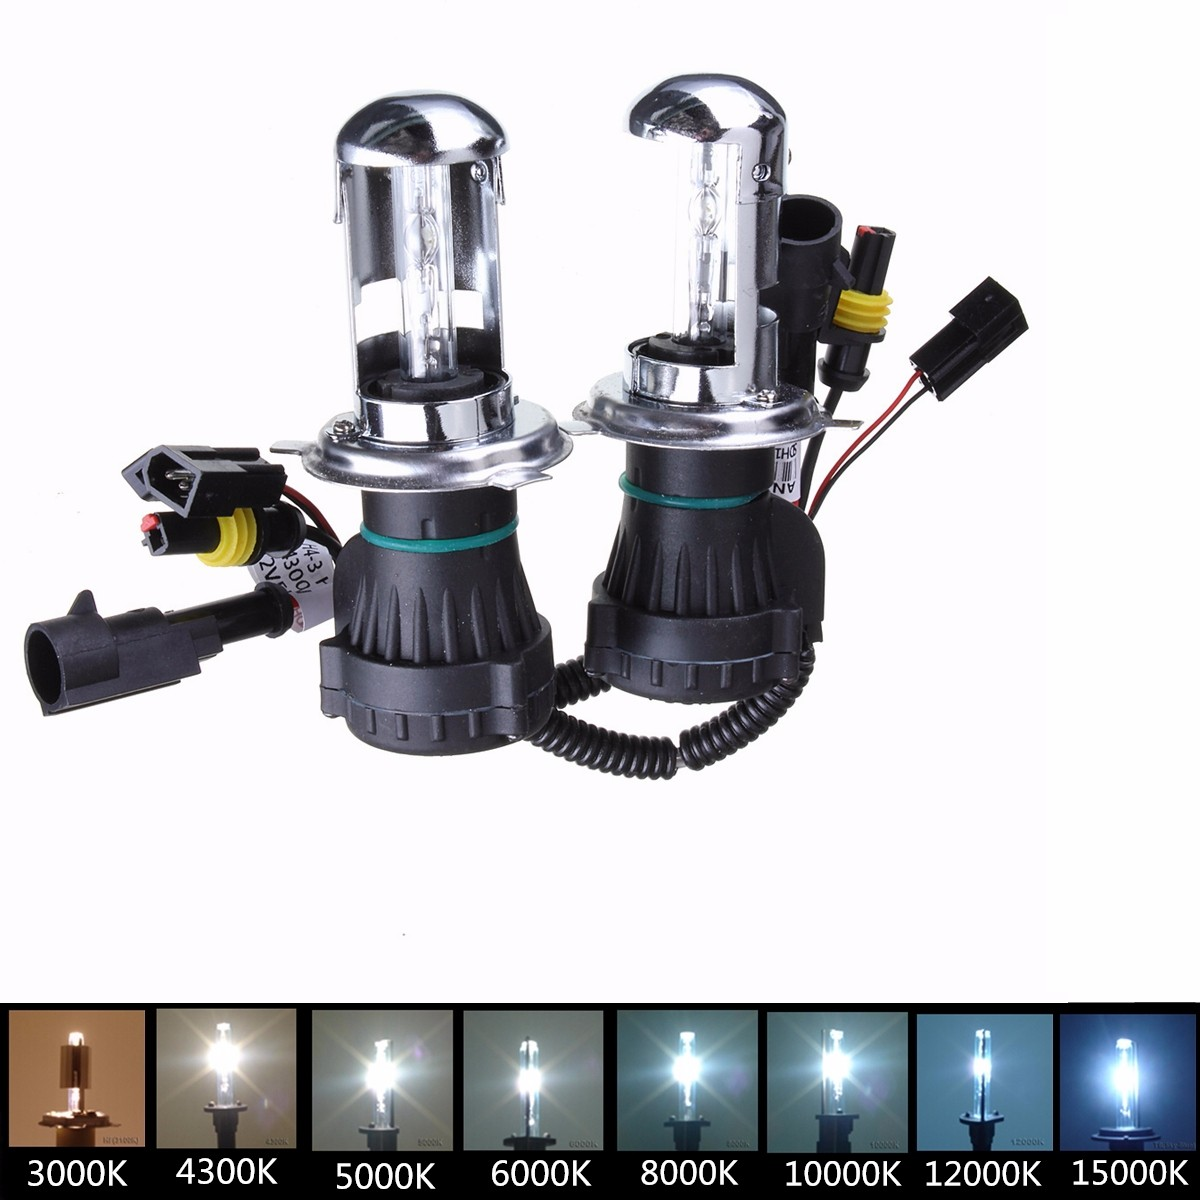 2Pcs H4 35W HI/LO Beam Car Leadlamp Bi-Xenon For HID Headlight Conversion Kit Headlight Light Bulb